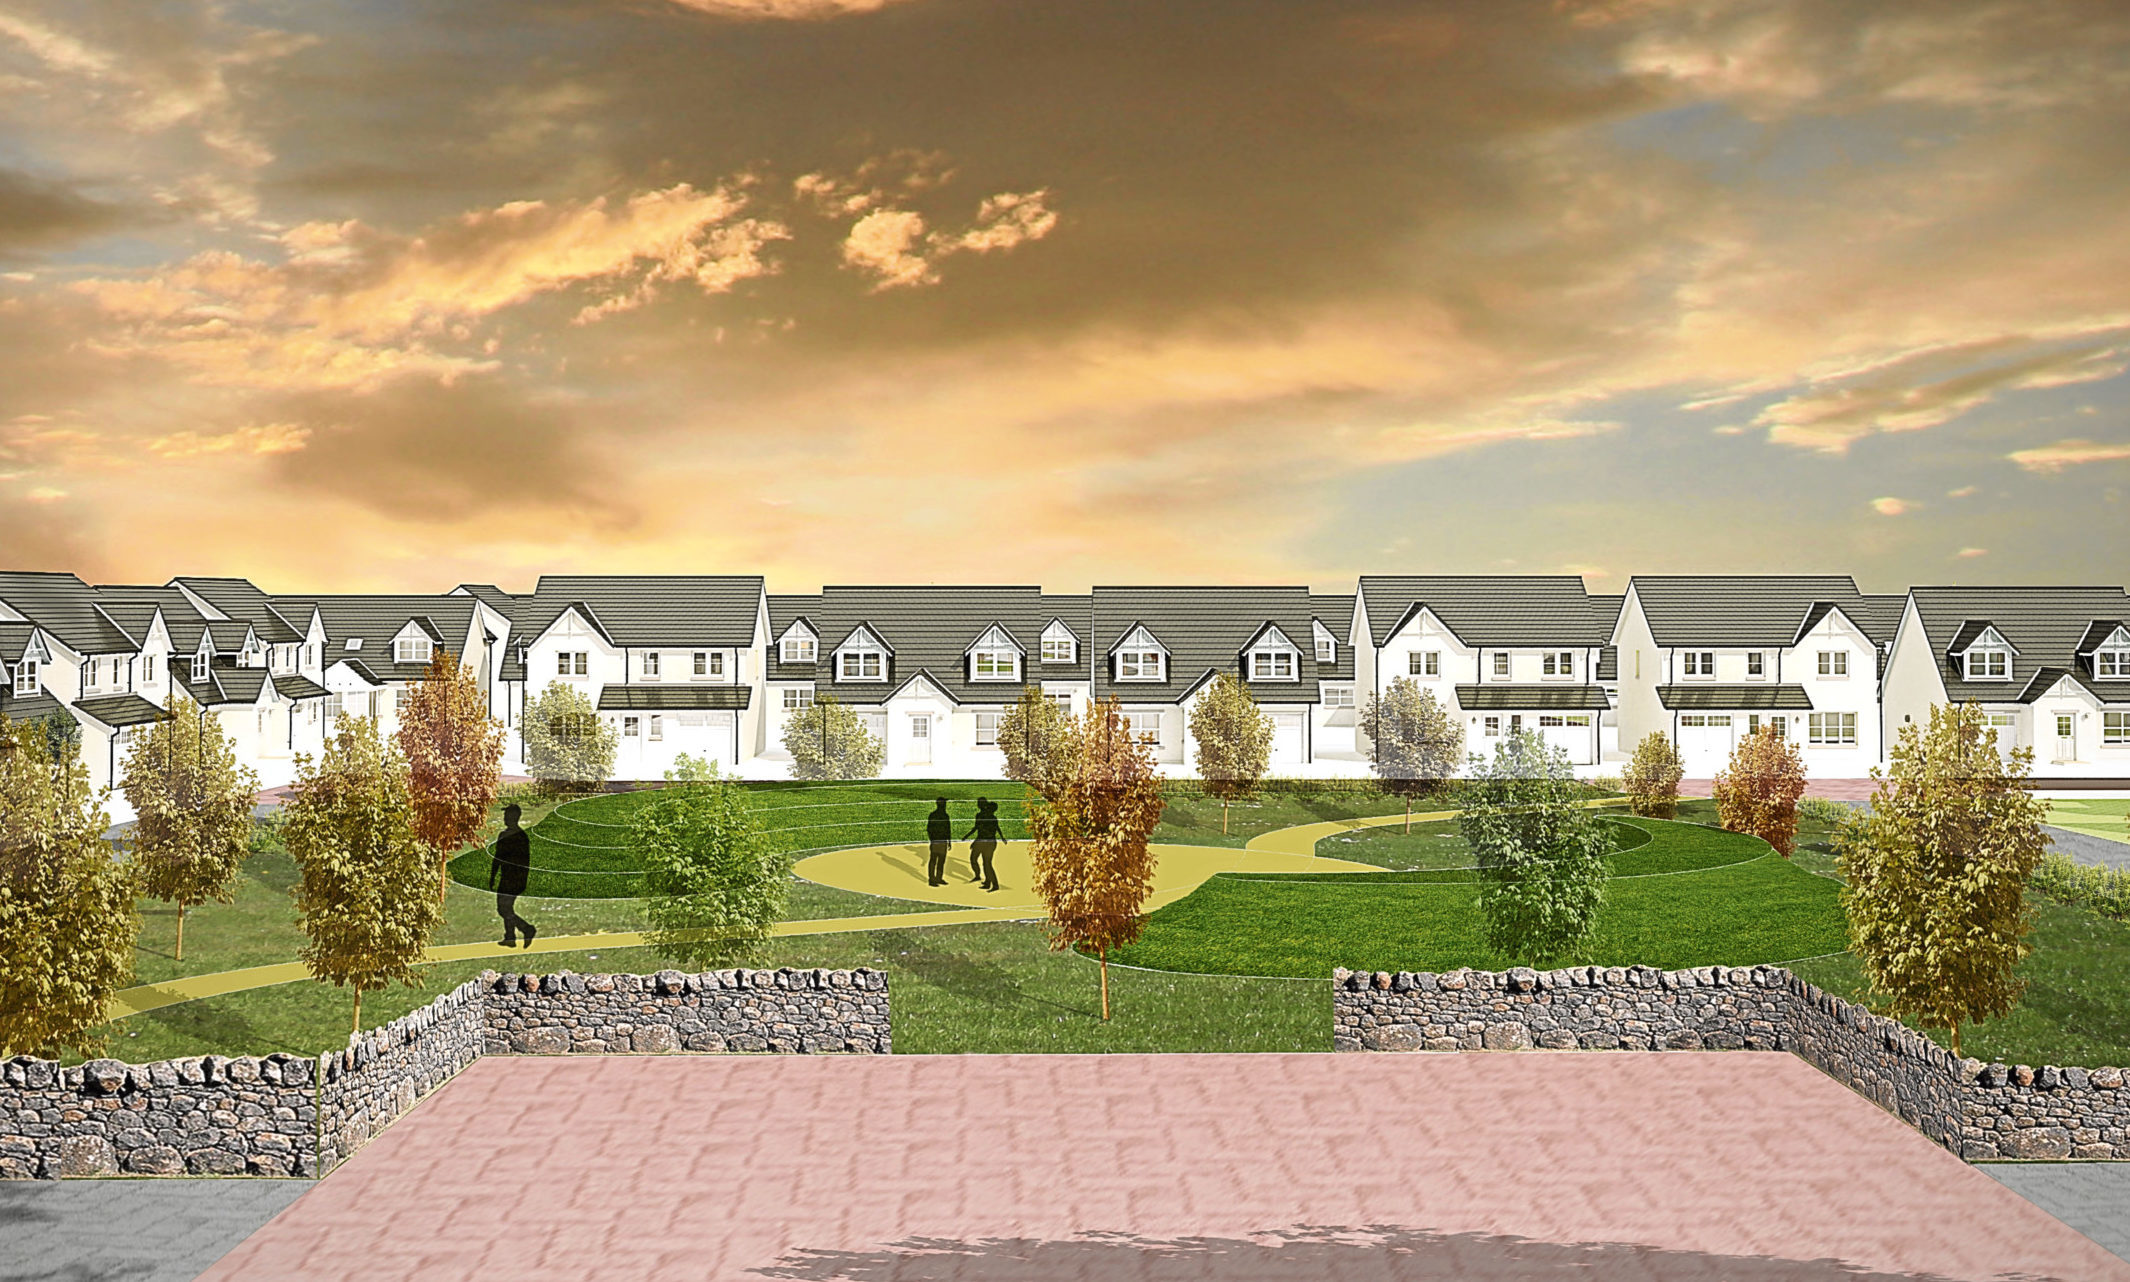 An artist impression of the proposed development